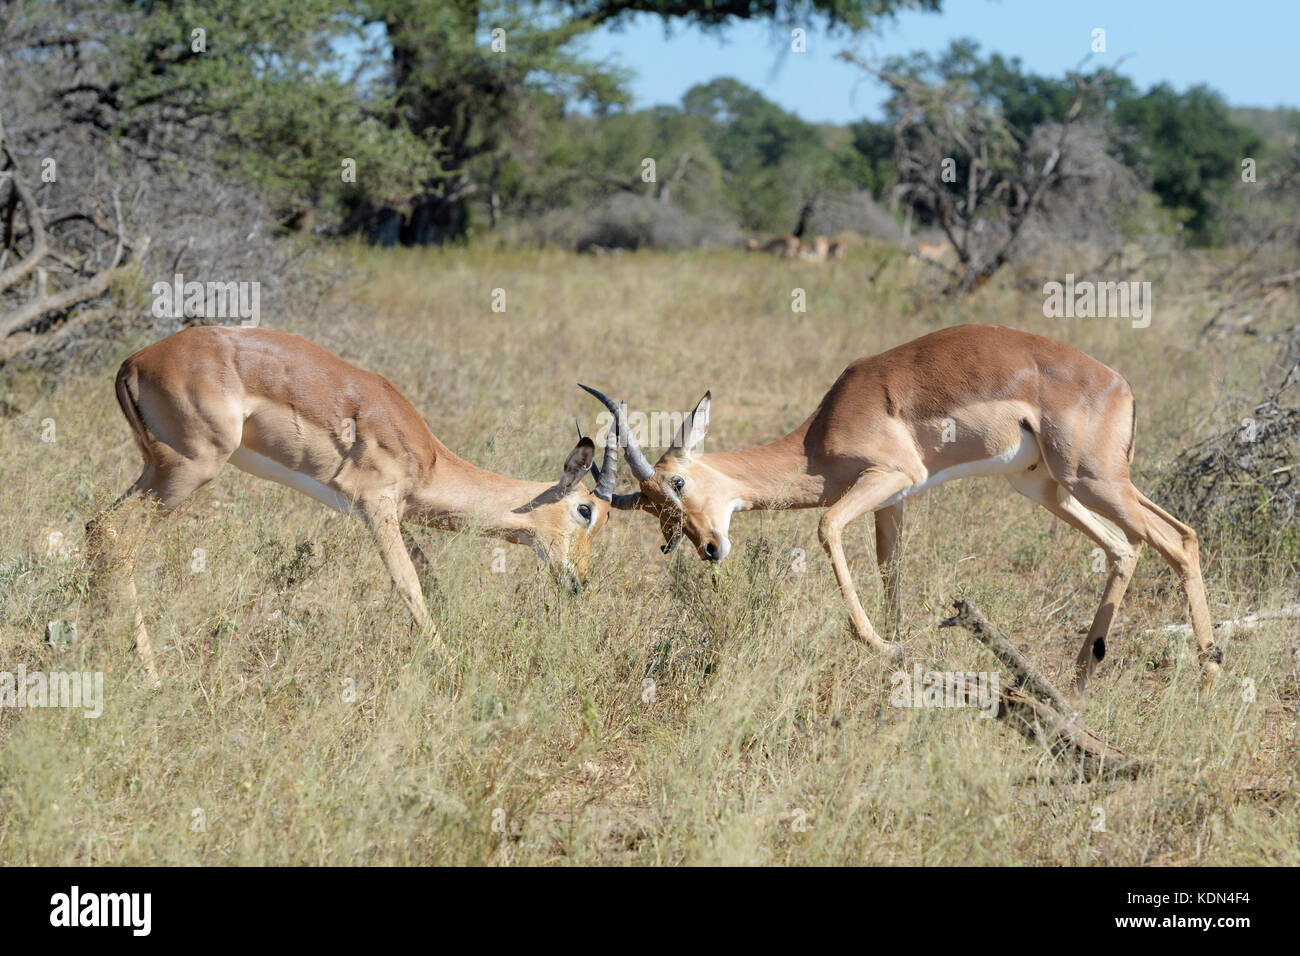 Two Impala (Aepyceros melampus) male fighting for dominance, Kruger National Park, South Africa Stock Photo